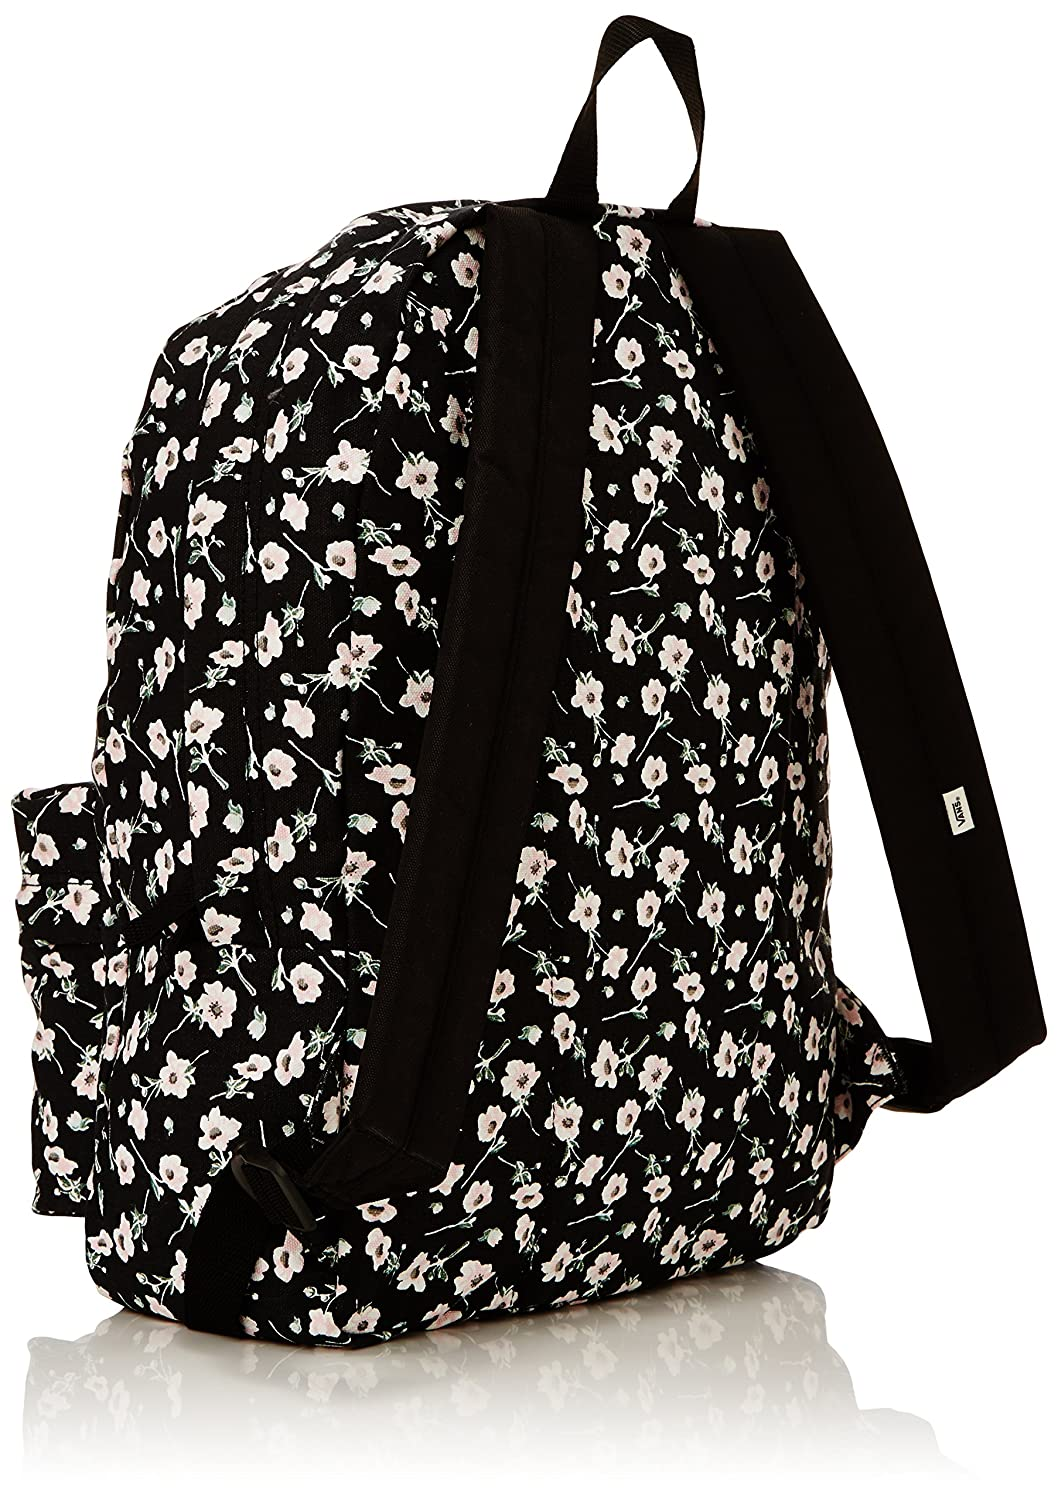 7475c805a87ead VANS Realm Backpack - Graphite Flowers  Amazon.ca  Sports   Outdoors